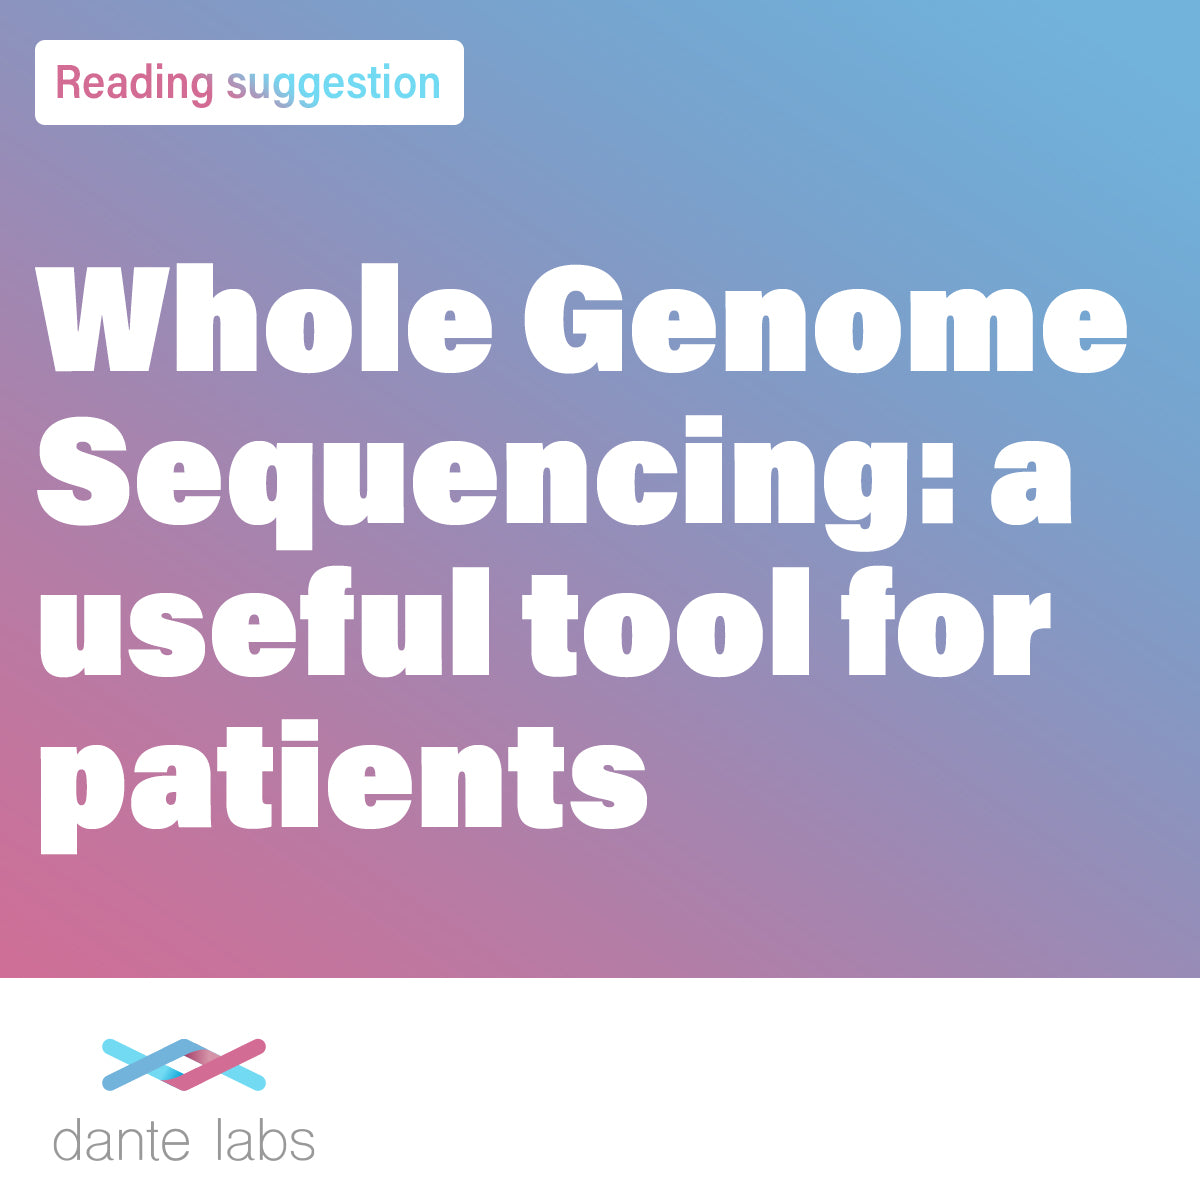 Whole Genome Sequencing: A Useful Tool for Patients